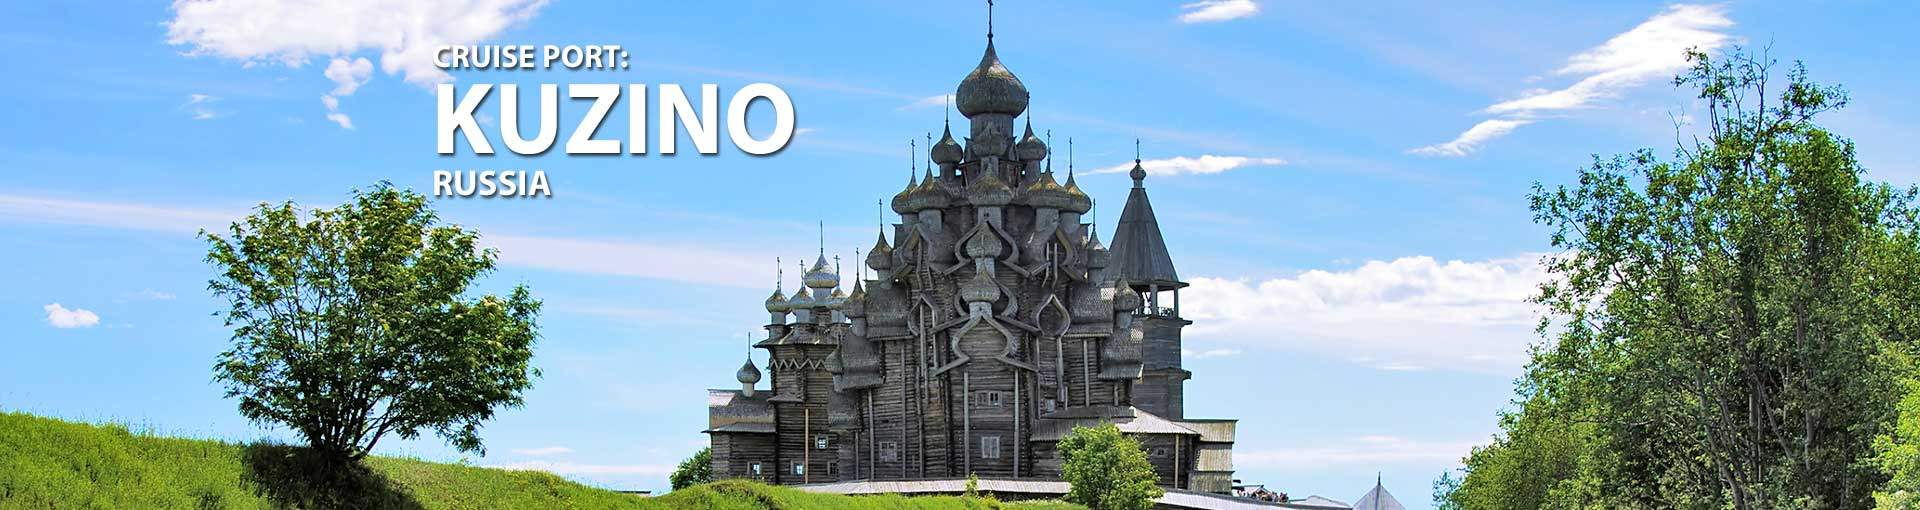 Cruises to Kuzino, Russia